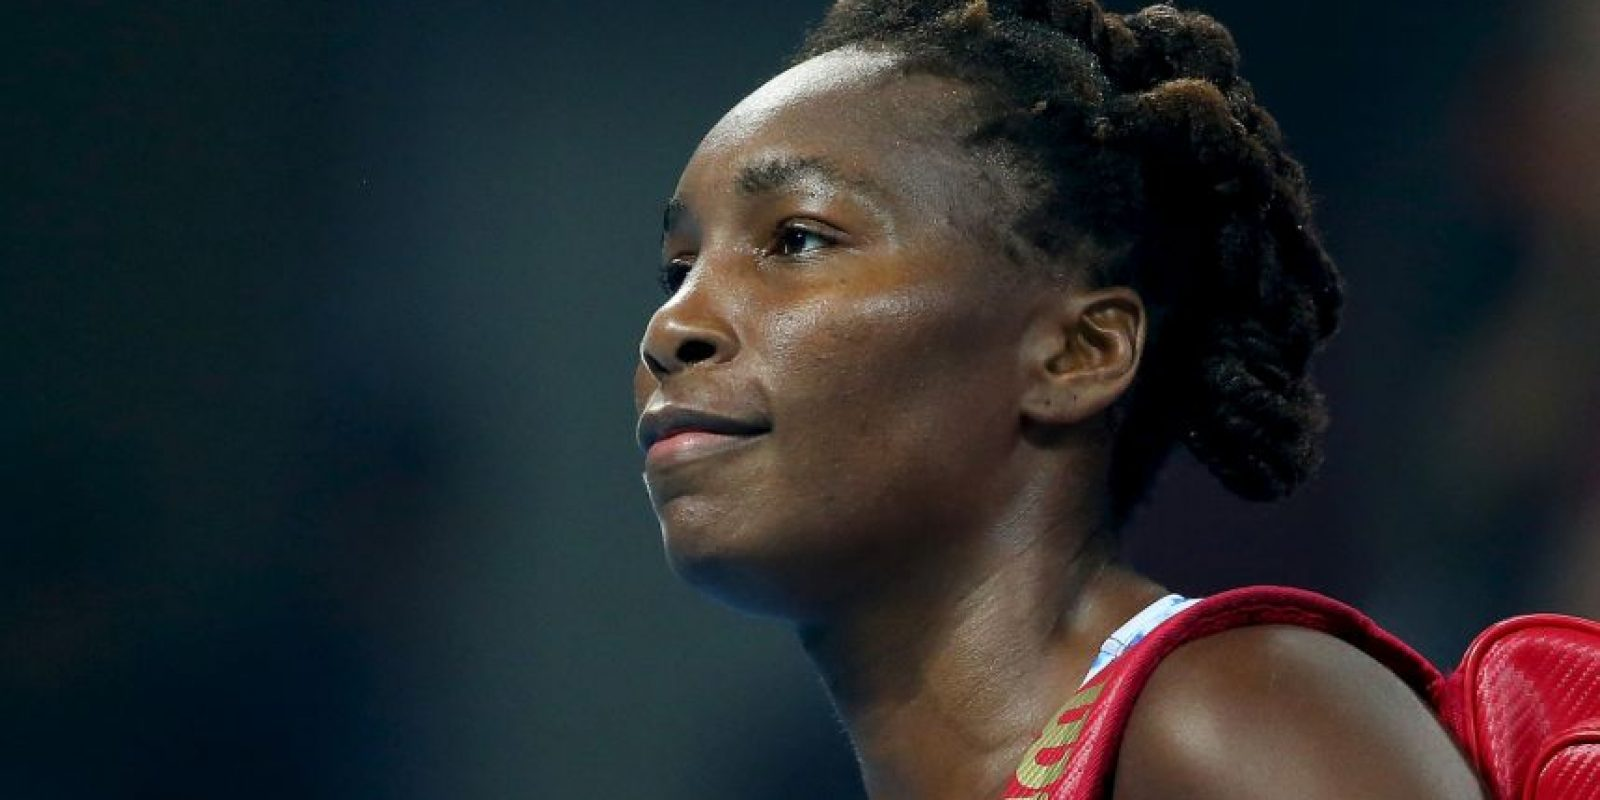 Venus Williams terminará la temporada en el top-ten a sus 35 años Foto: Getty Images